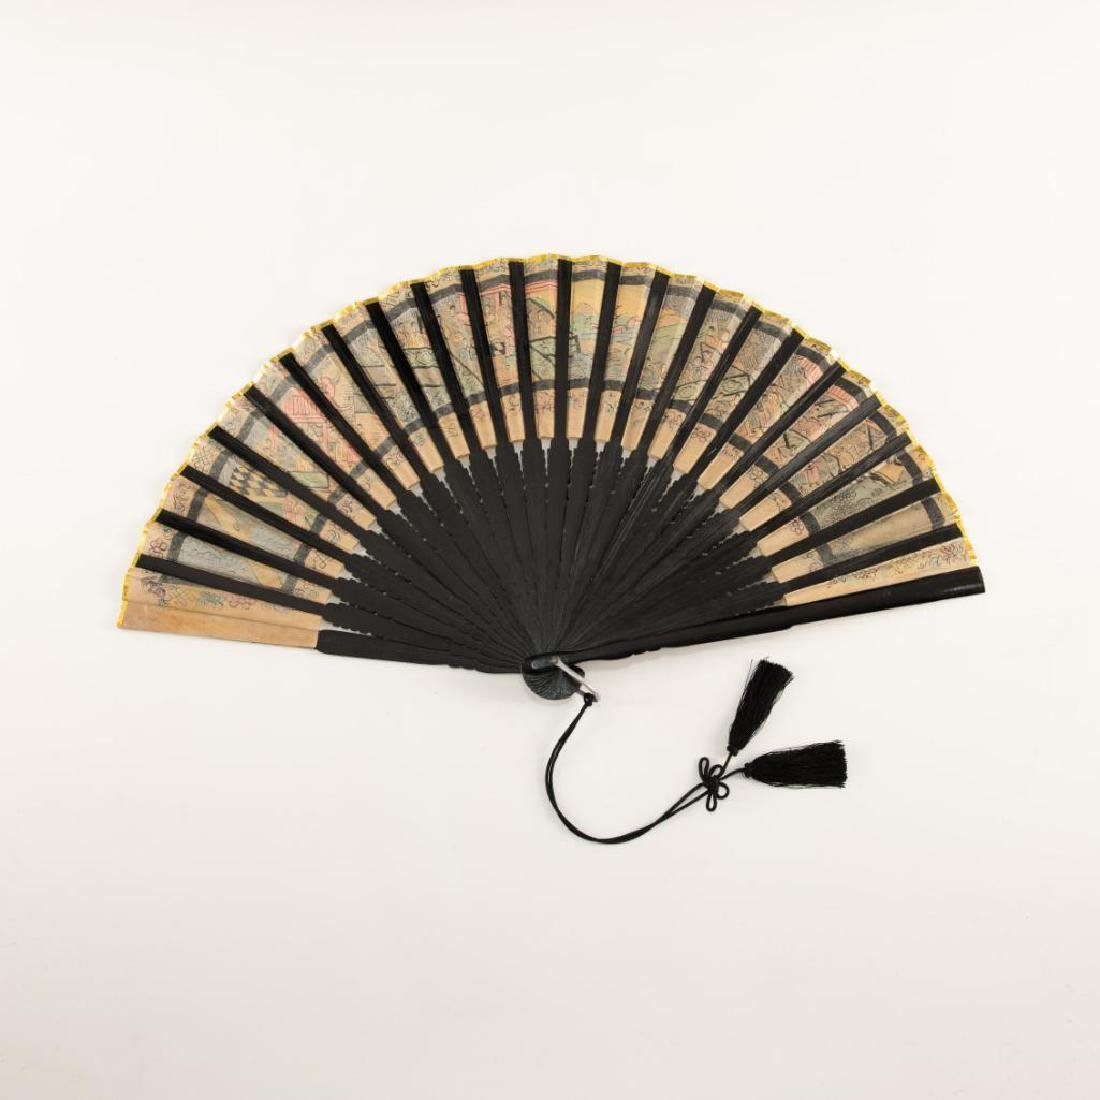 ANTIQUE CHINESE HAND PAINTED BLACK LACQUER FOLDING FAN - 10